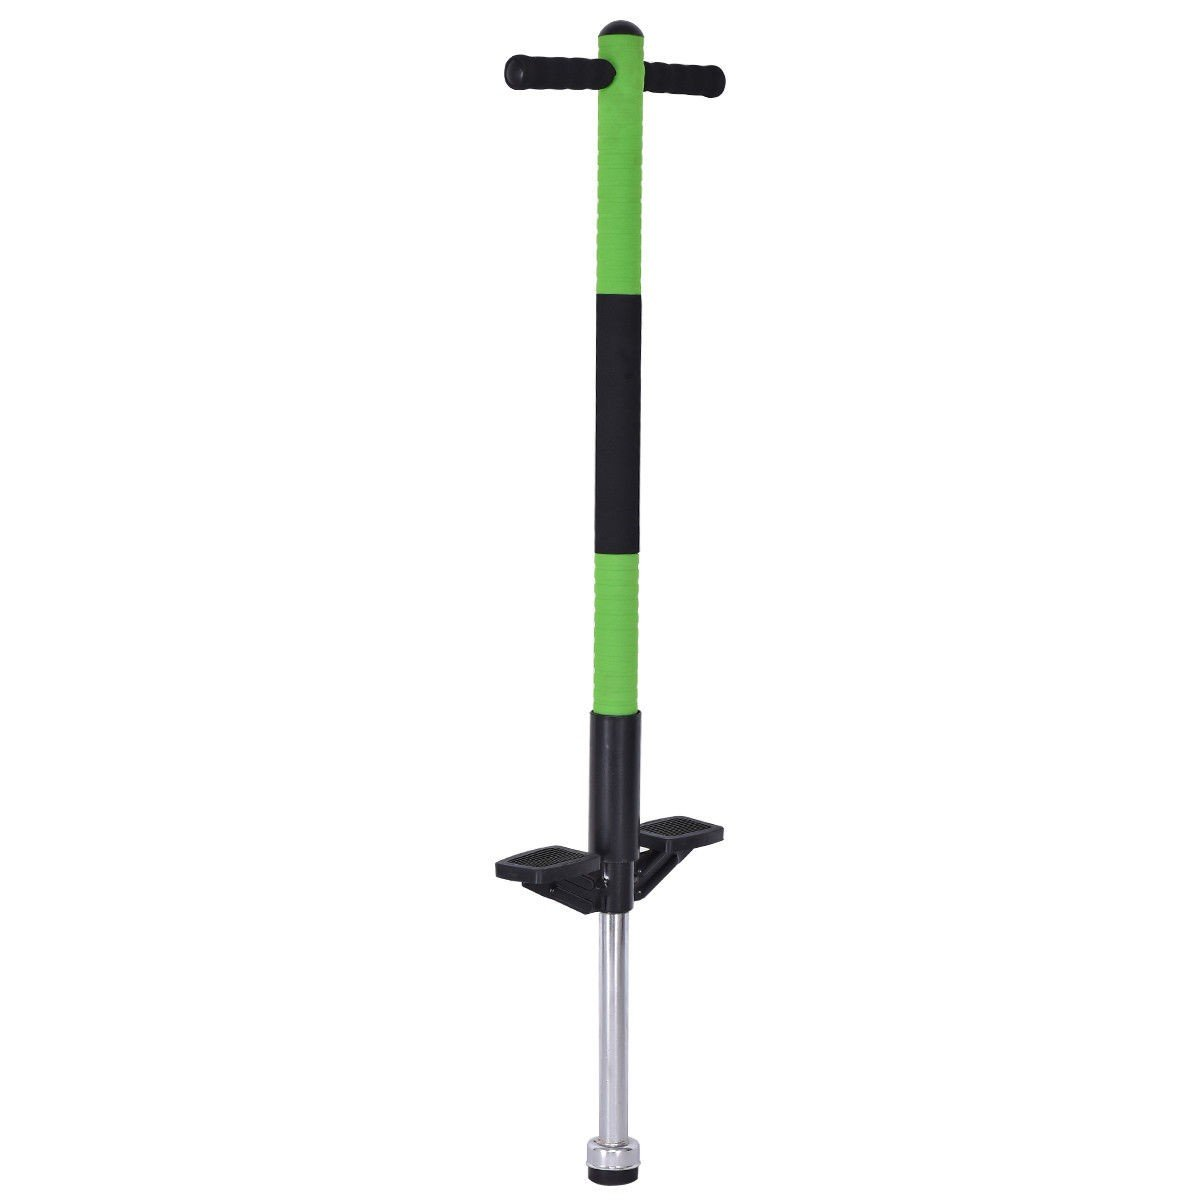 COSTWAY Pogo Stick Jump Stick for Children and Adults Healthy Fun Exercise Green Only by eight24hours